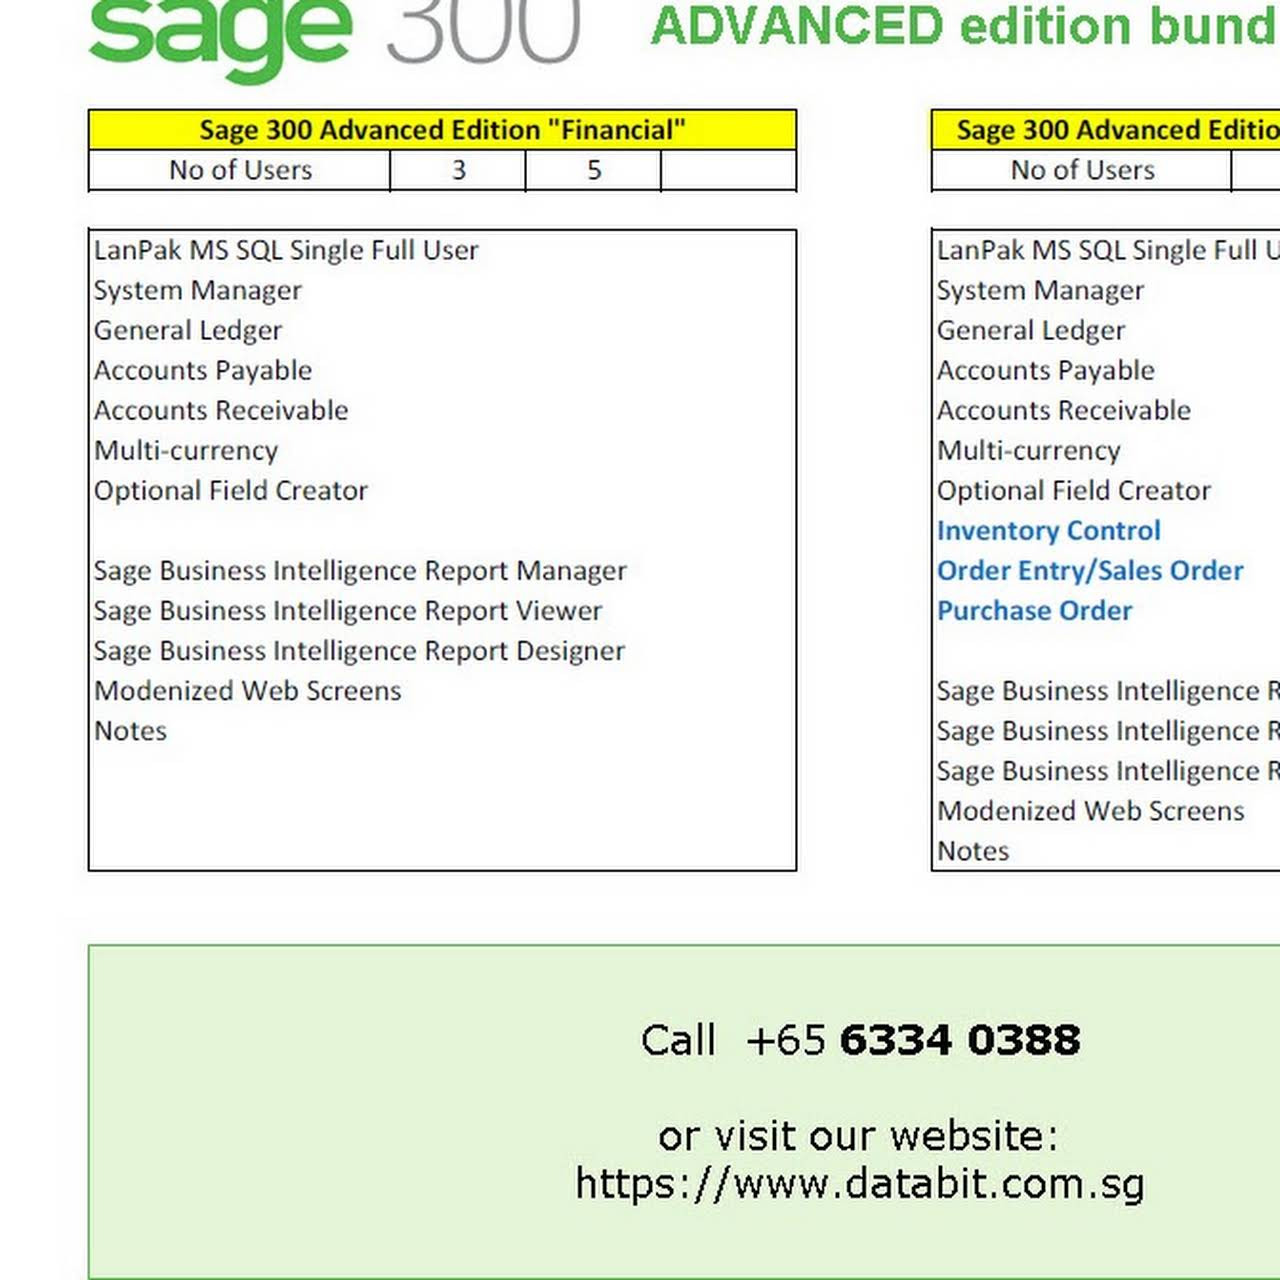 Databit Pte Ltd - Sage 300 Authorized Partner